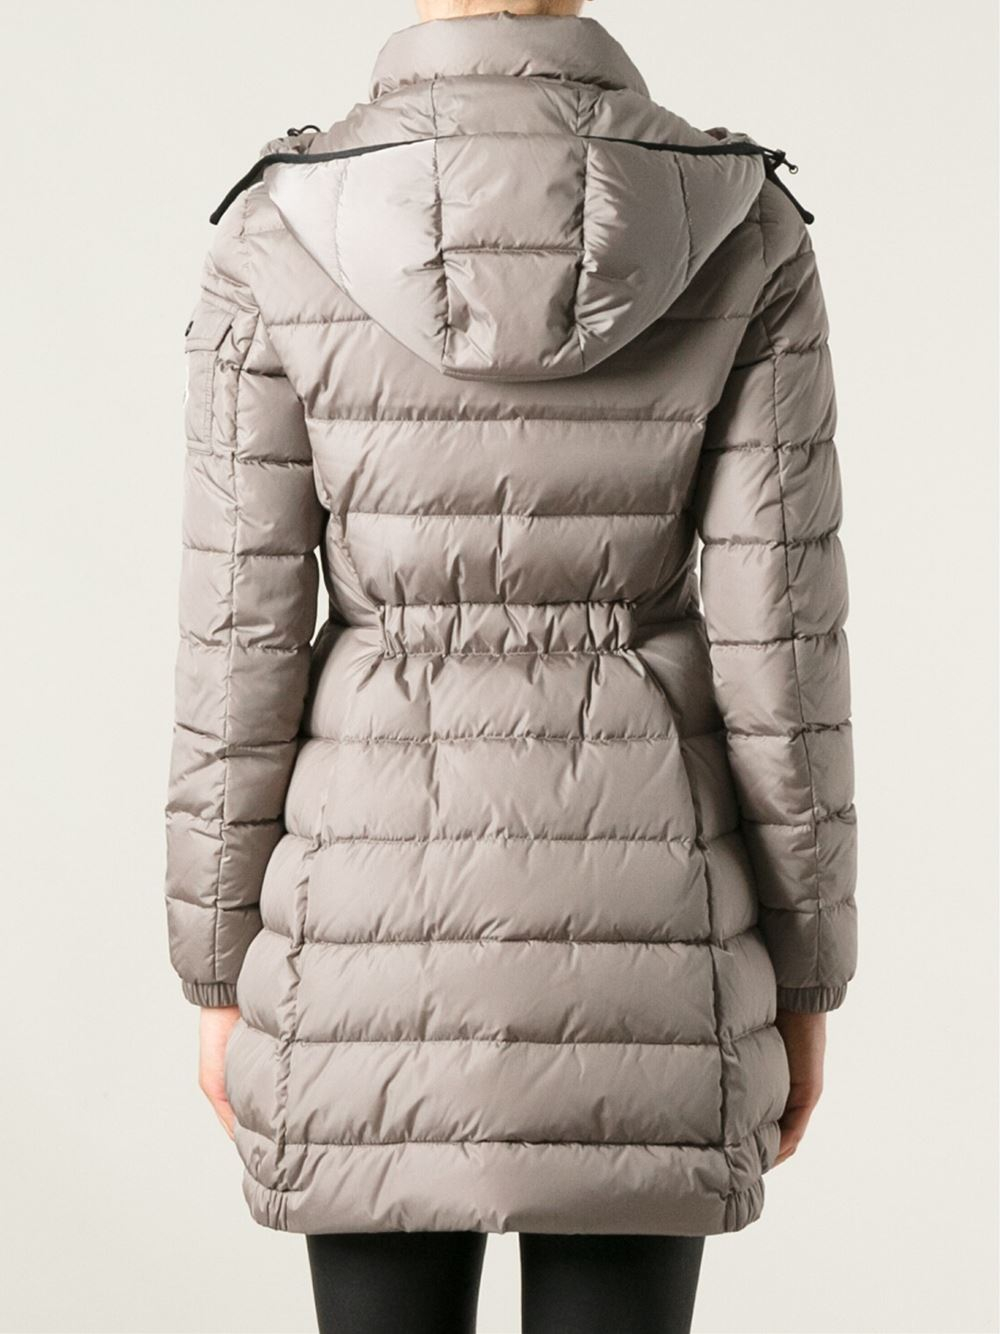 2716b33d1 Moncler 'Charpal' Padded Jacket in Natural - Lyst